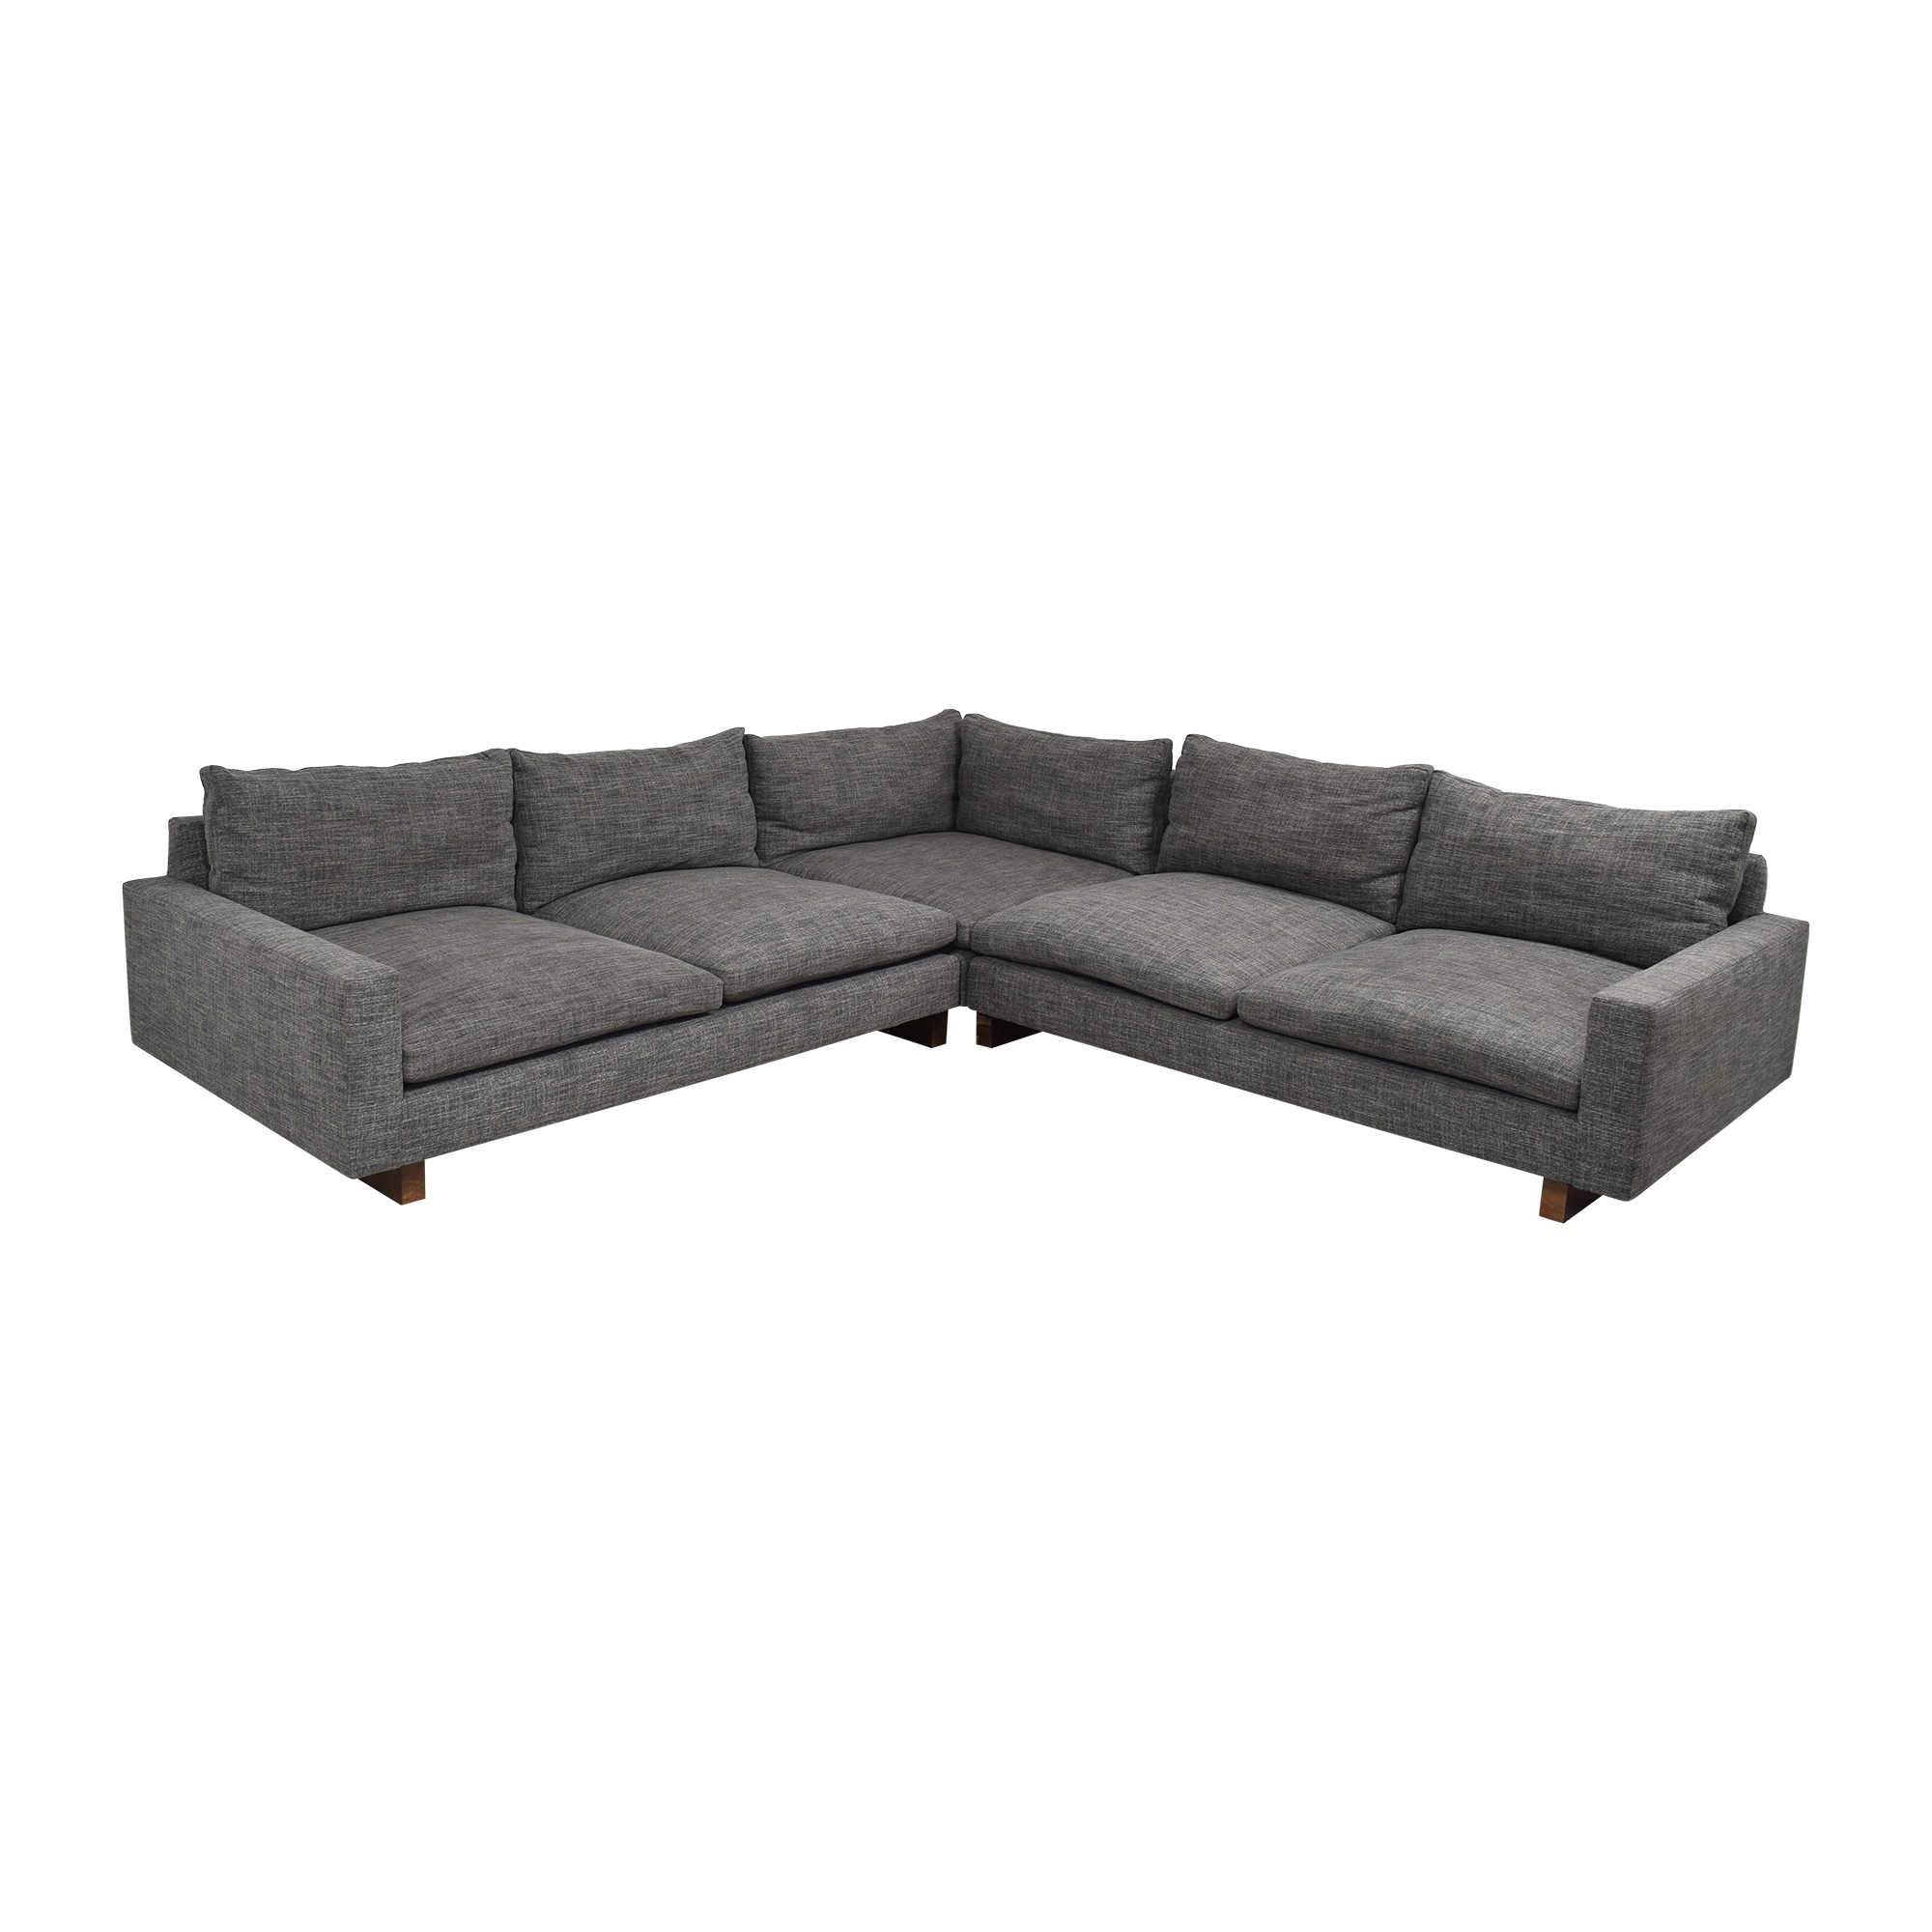 42% Off – West Elm West Elm Harmony 3 Piece L Shaped Pertaining To West Elm Sectional Sofas (View 12 of 15)